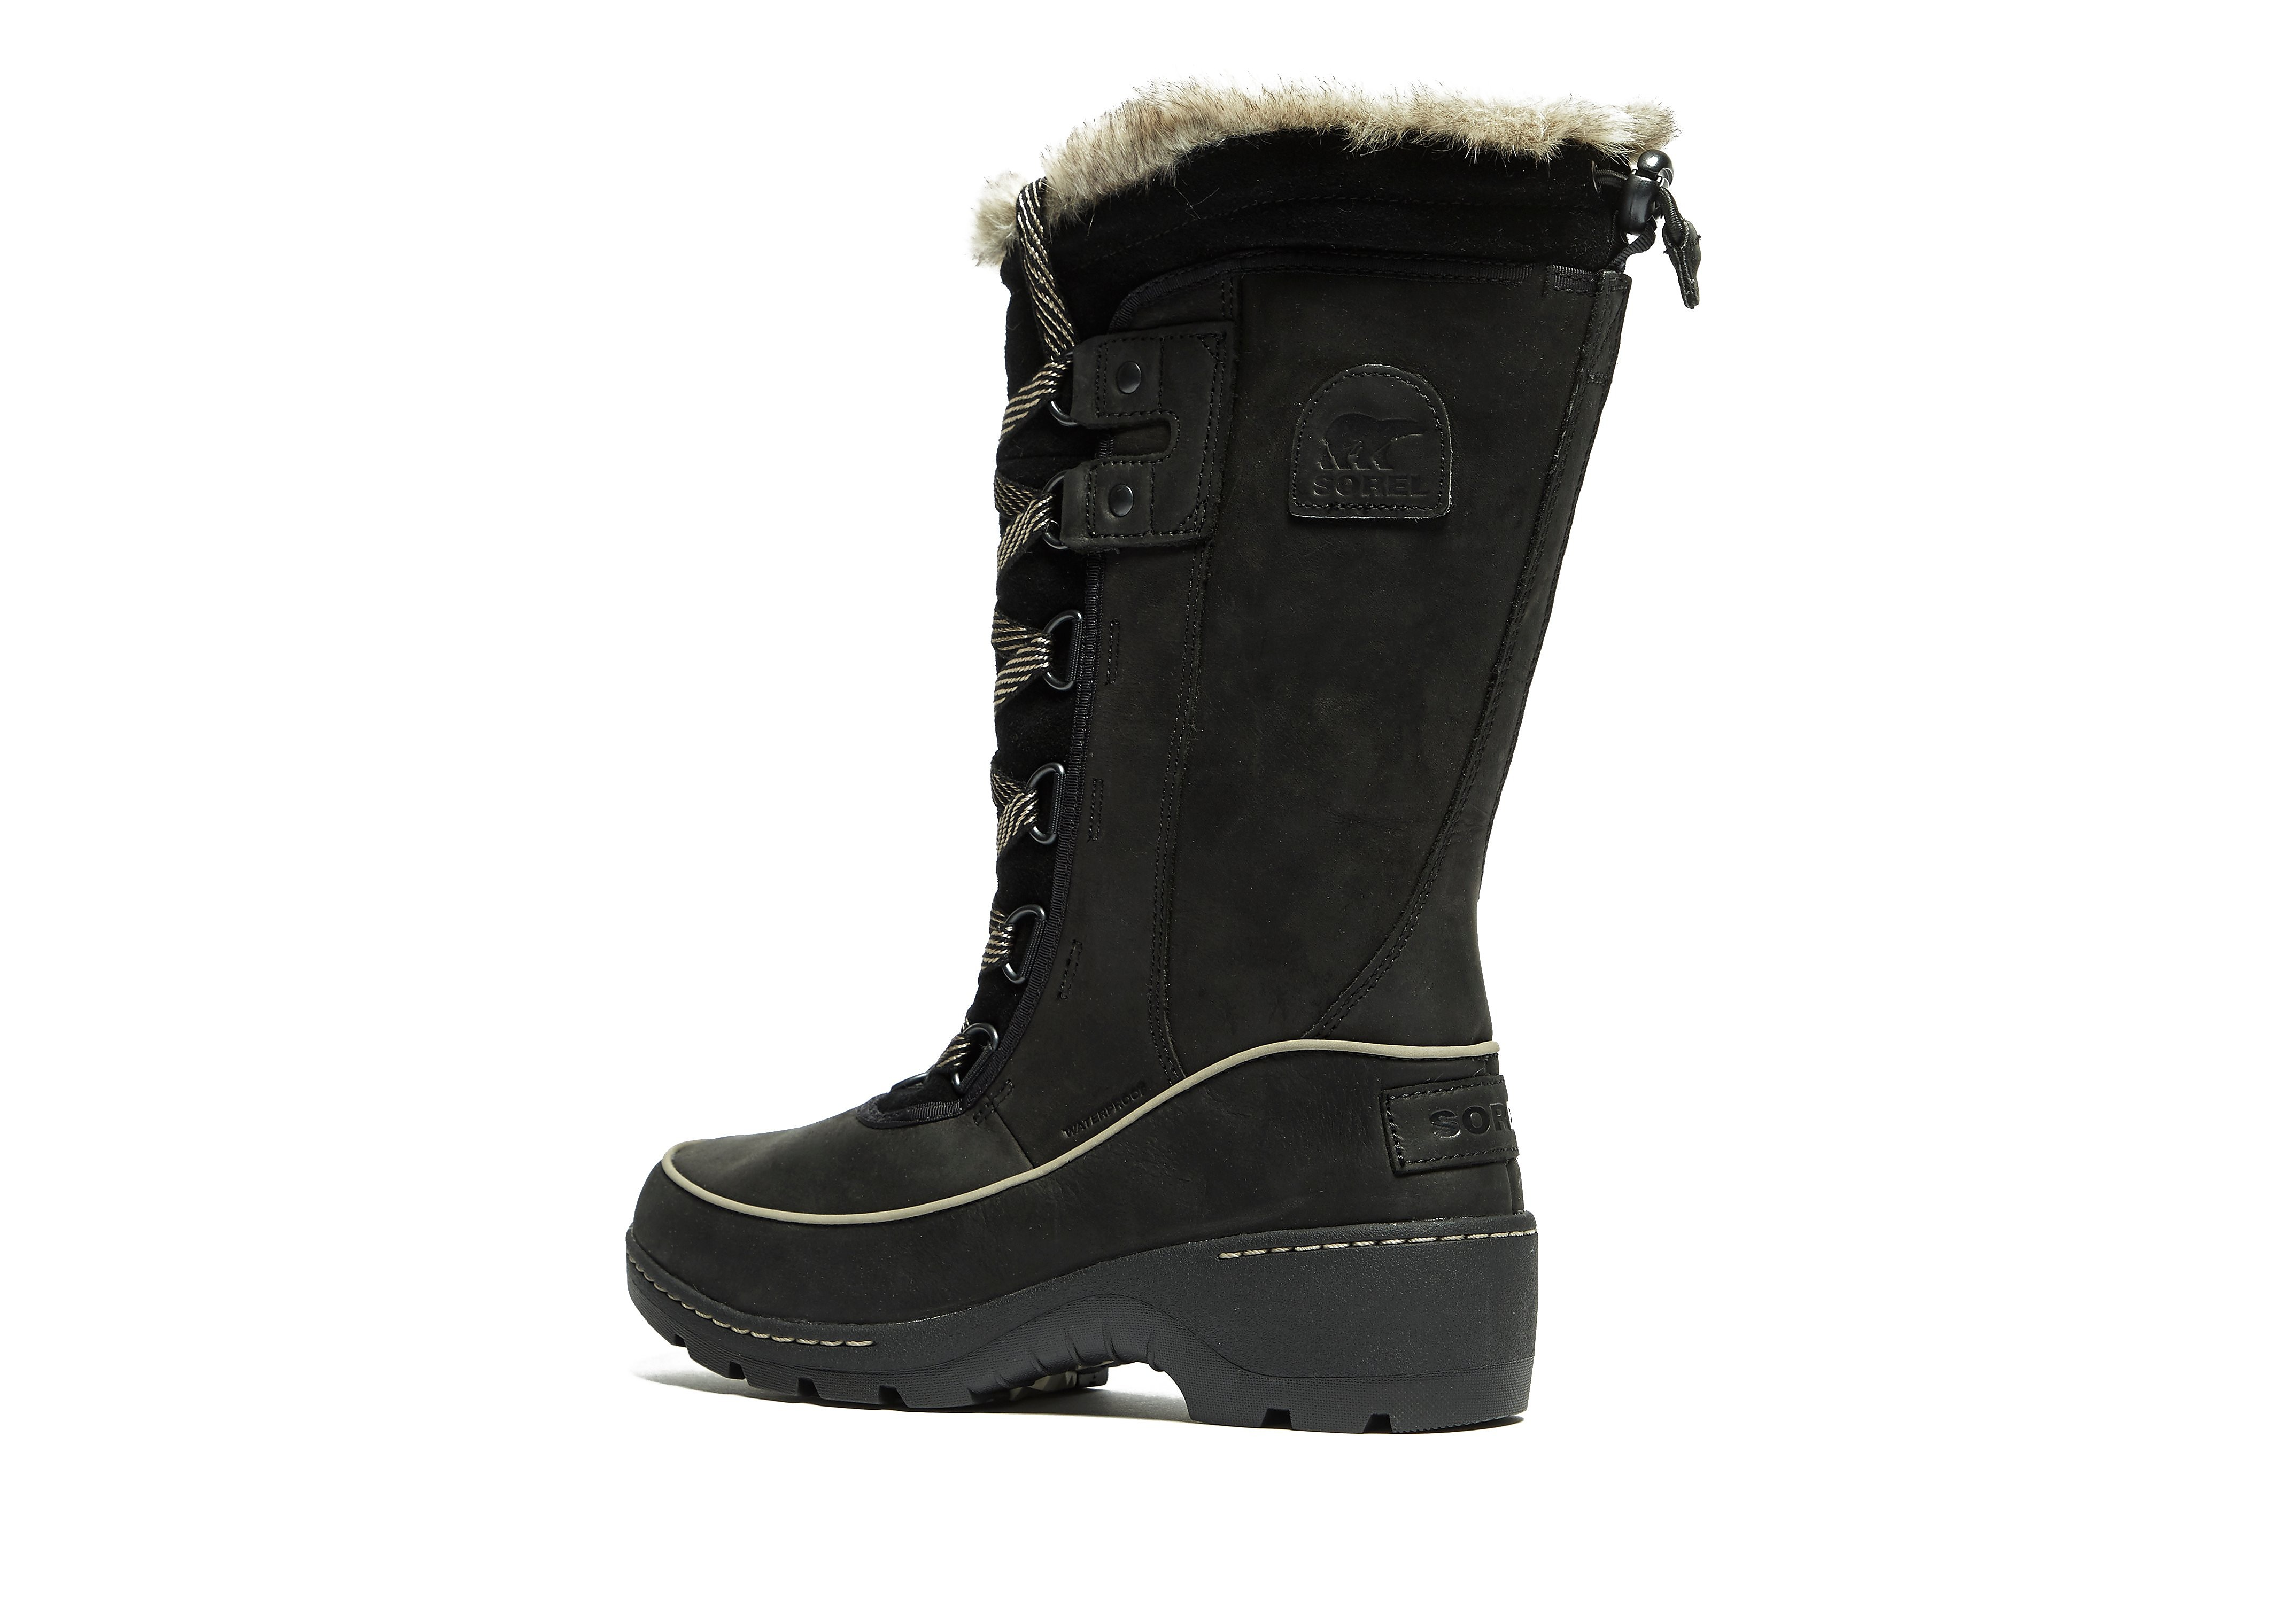 Sorel Women's Joan of Arctic Waterproof Snow Boots